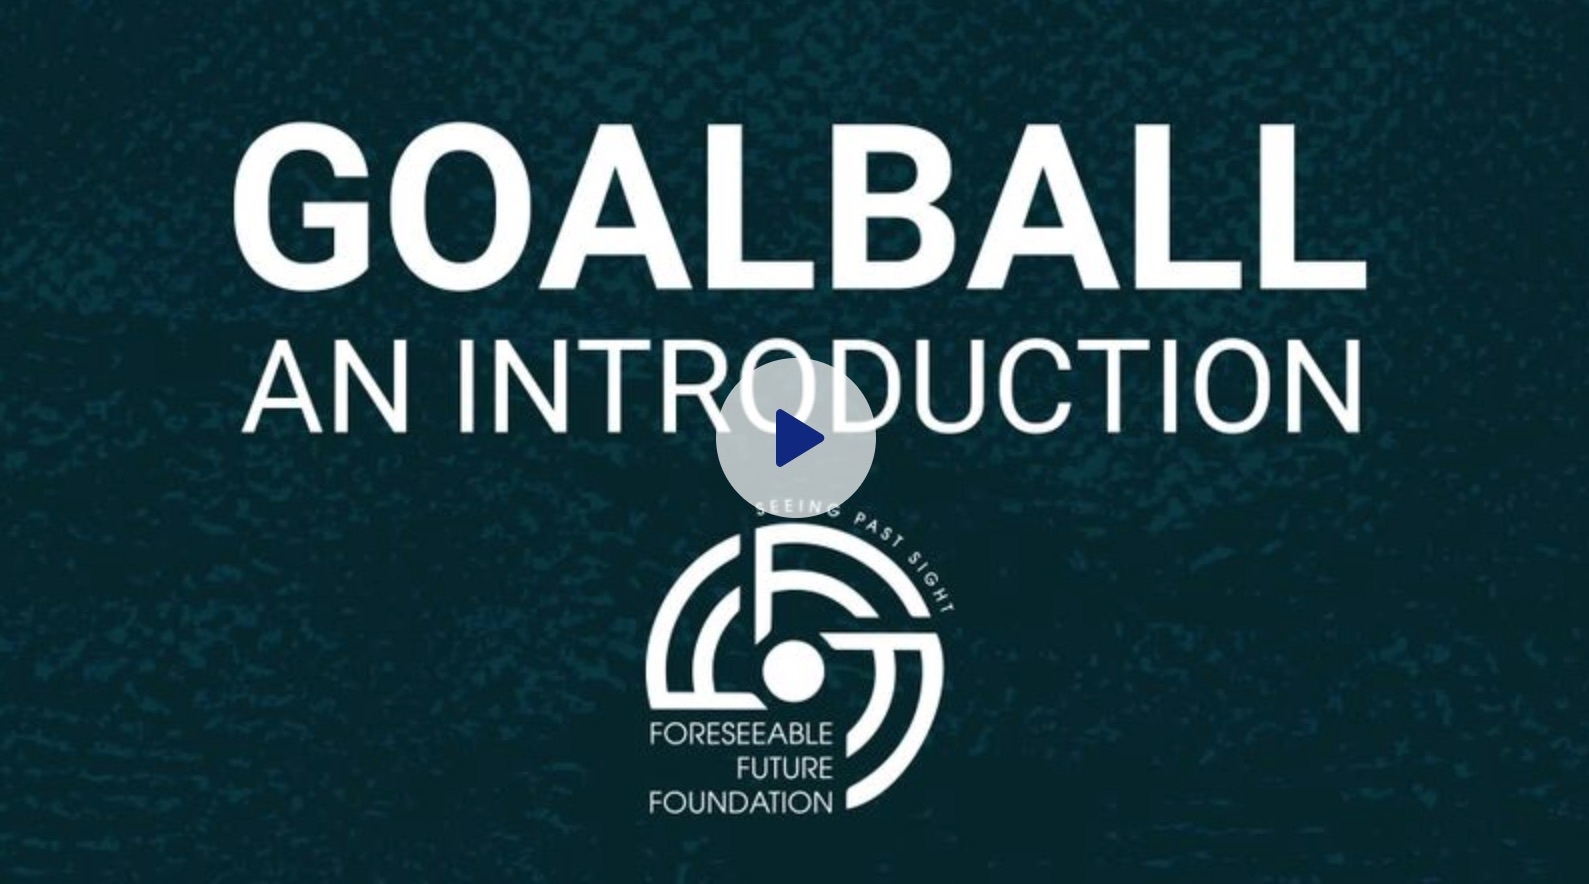 GoalBall for Foreseeable Future